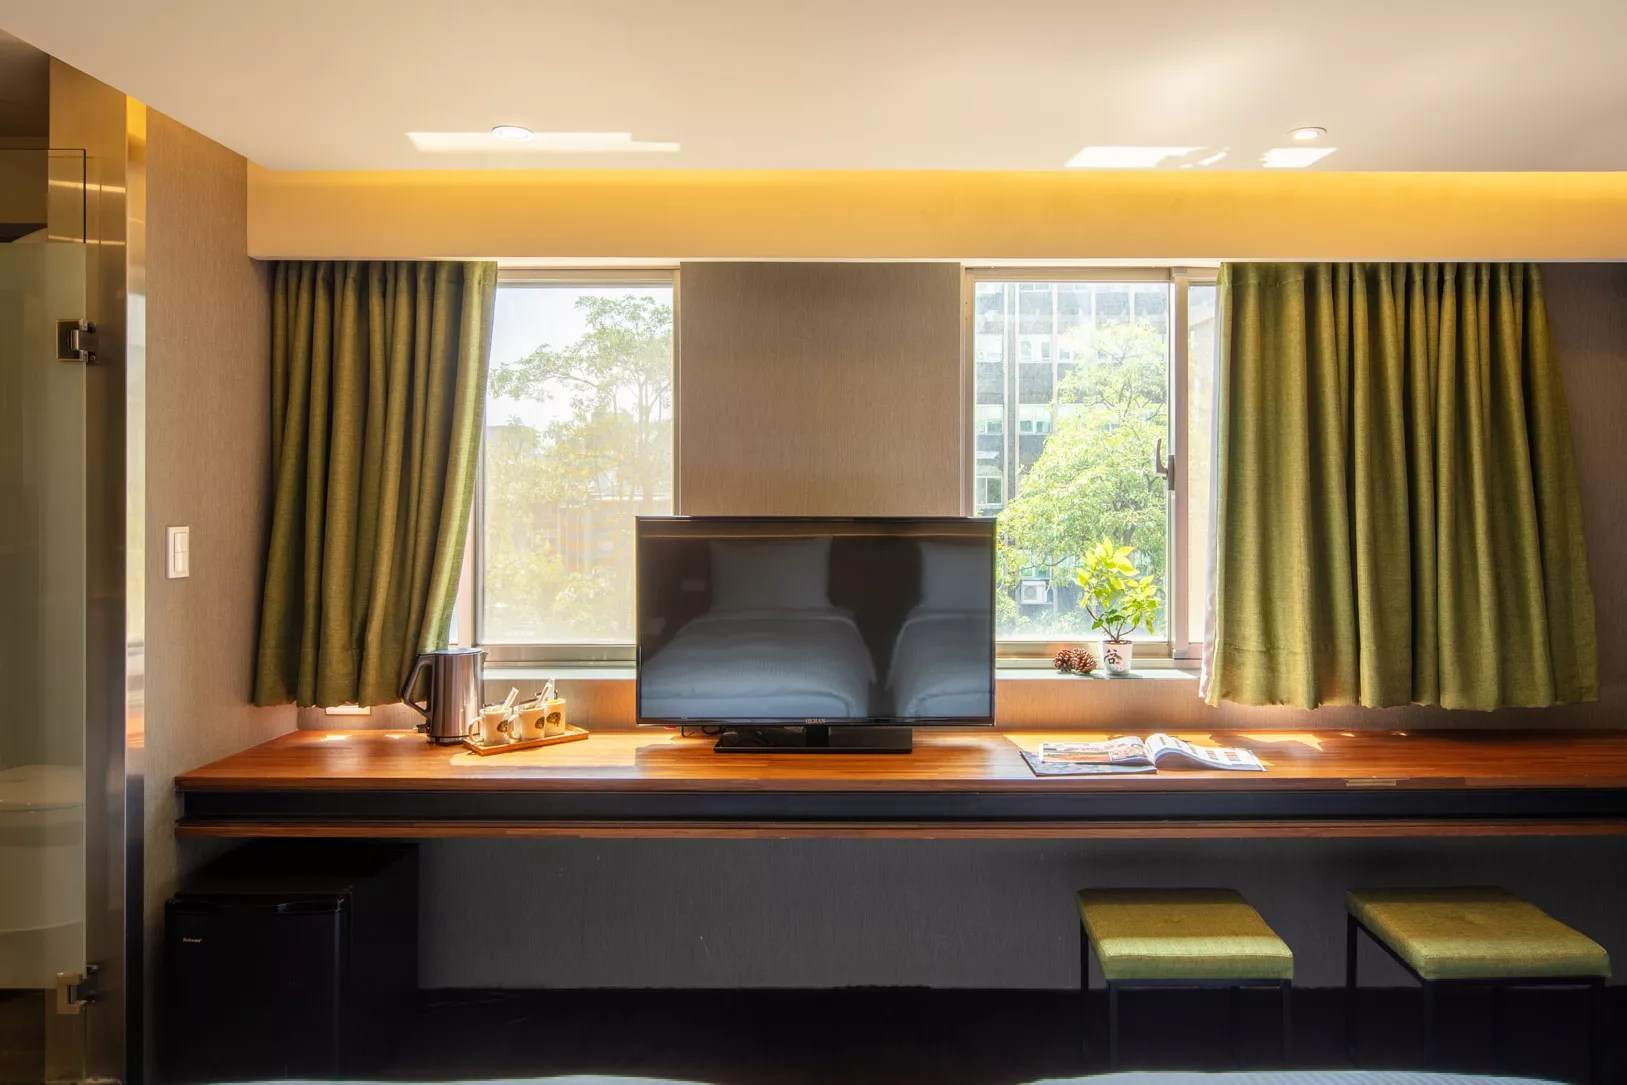 Rooms - Executive Triple Room Taipei city Hotel - Goodmore Hotel Shi-Da Near by MRT Guting Station & Taipower Building Station: Exit 4 (Yellow Line)